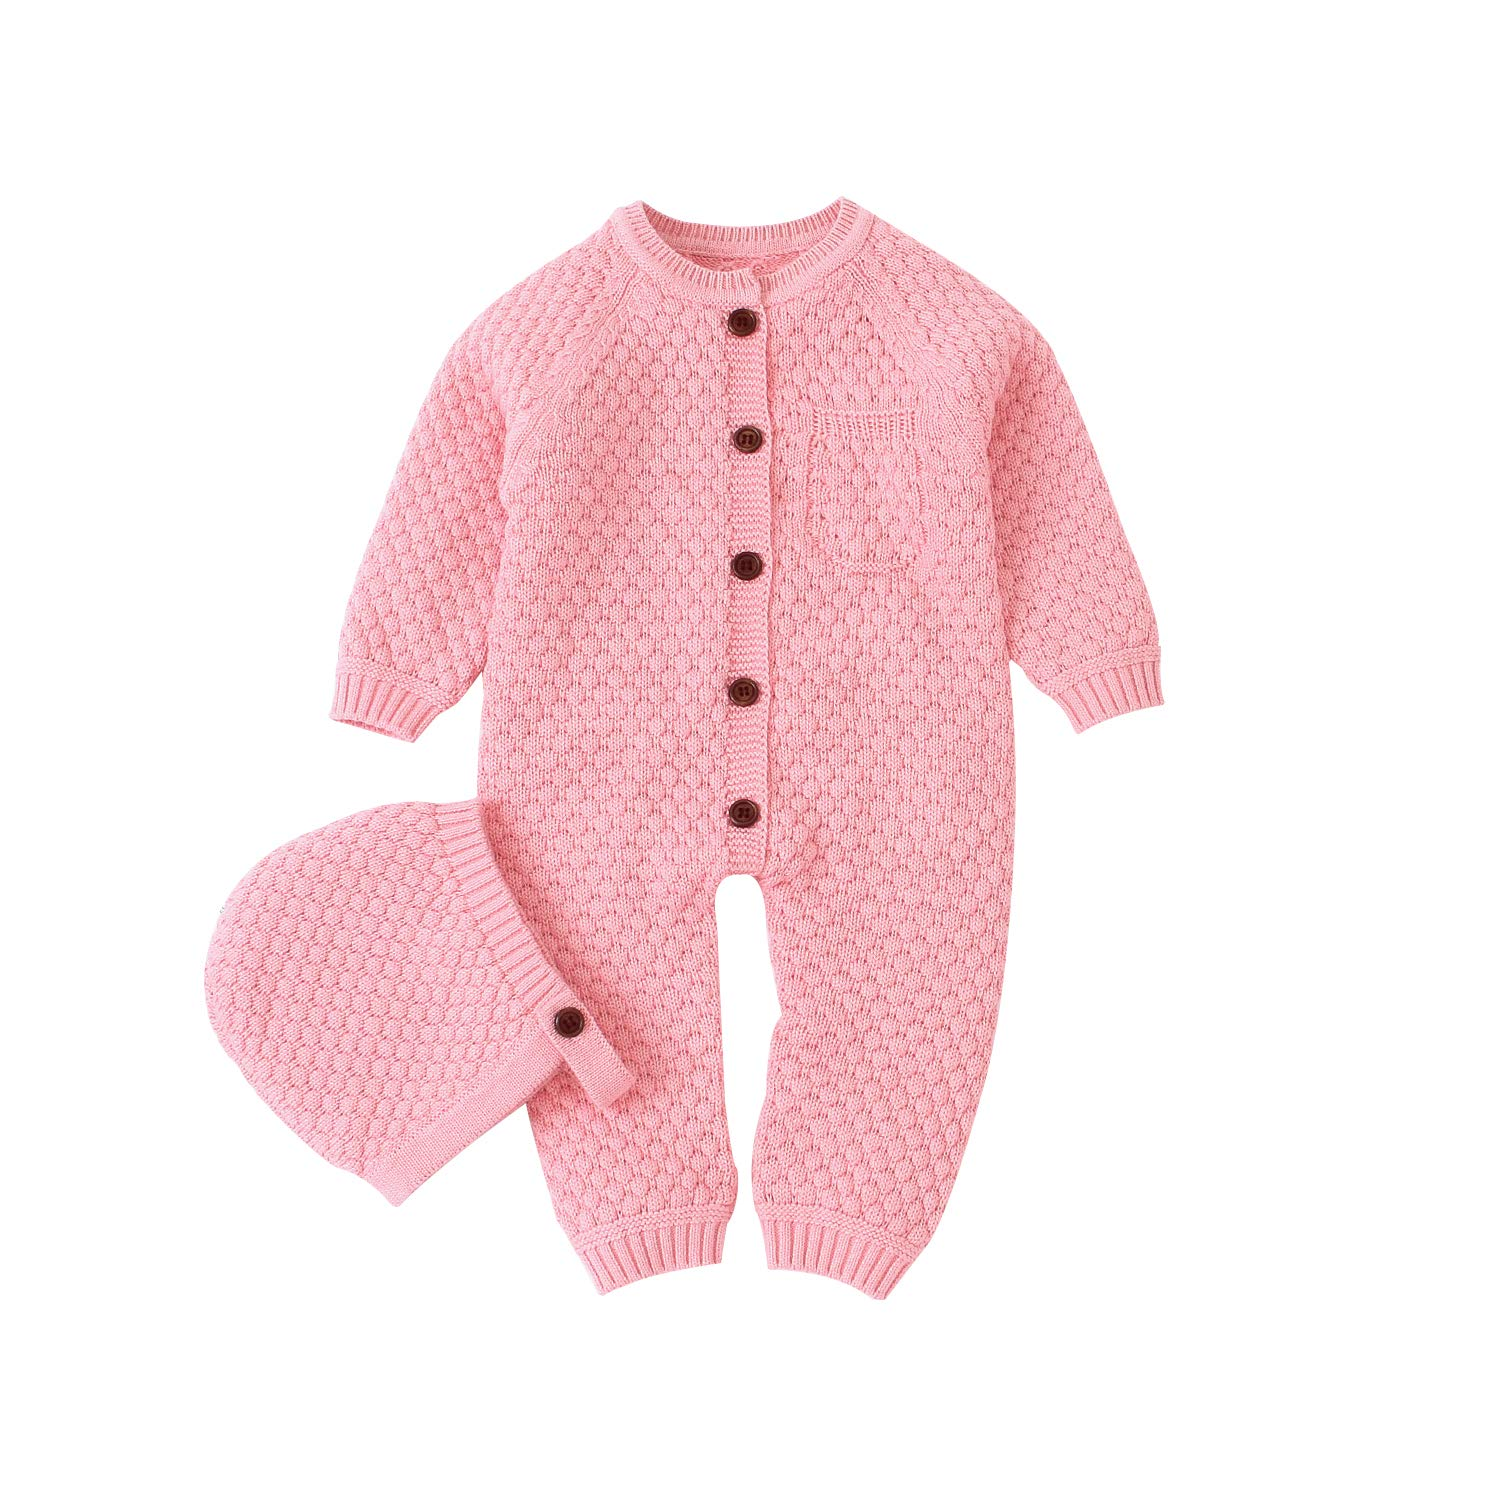 mimixiong Baby Newborn Knitted Sweater Romper Longsleeve Outfit Cotton Jumpsuit with Warm Hat Set